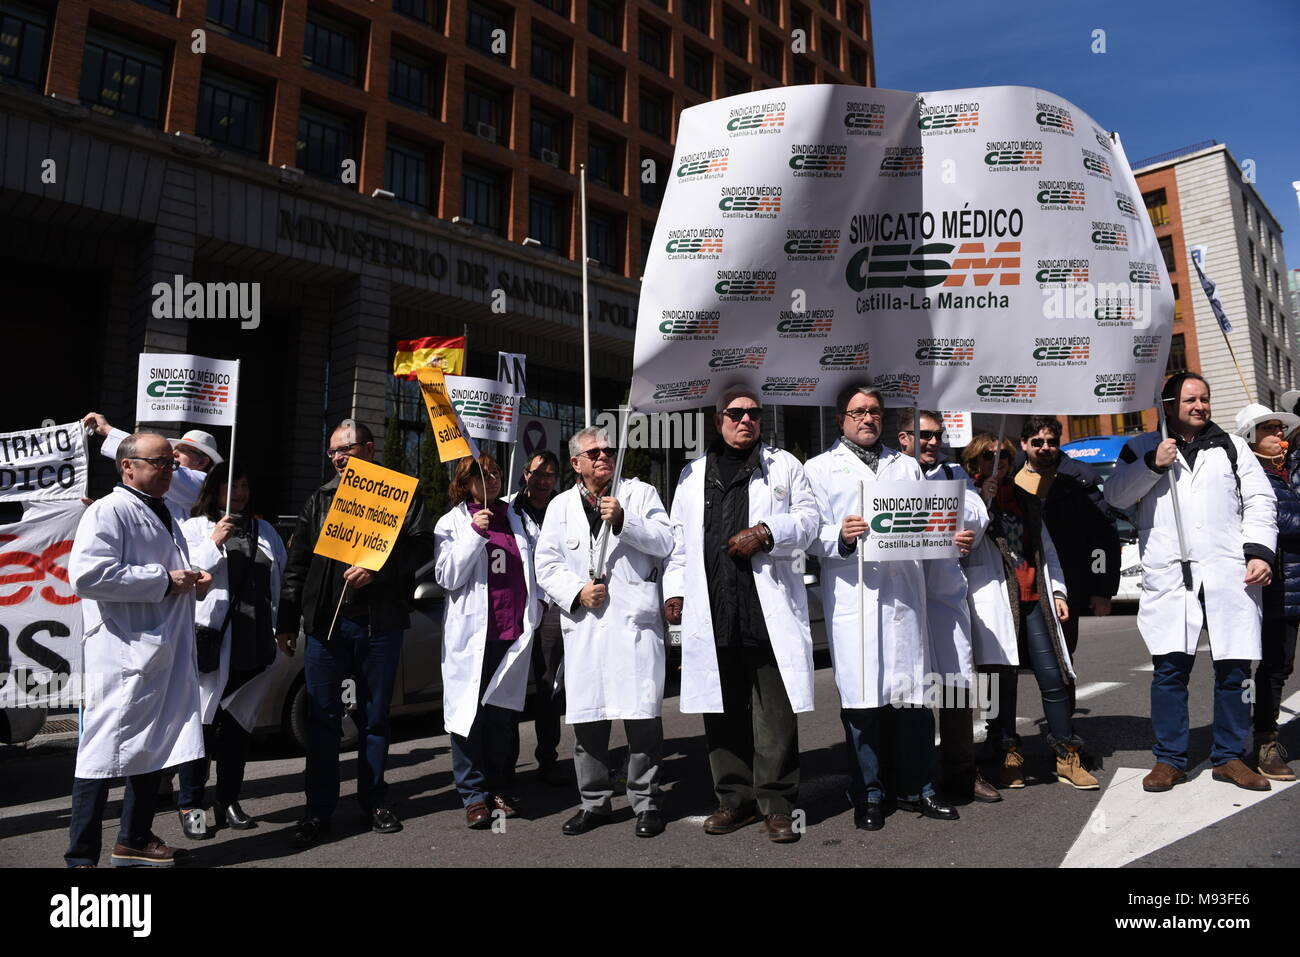 Madrid, Spain. 21st Mar, 2018. Spanish doctors protesting in Madrid against pay freezes, temporary contracts and spending cuts in the public health system. Credit: Jorge Sanz/Pacific Press/Alamy Live News - Stock Image